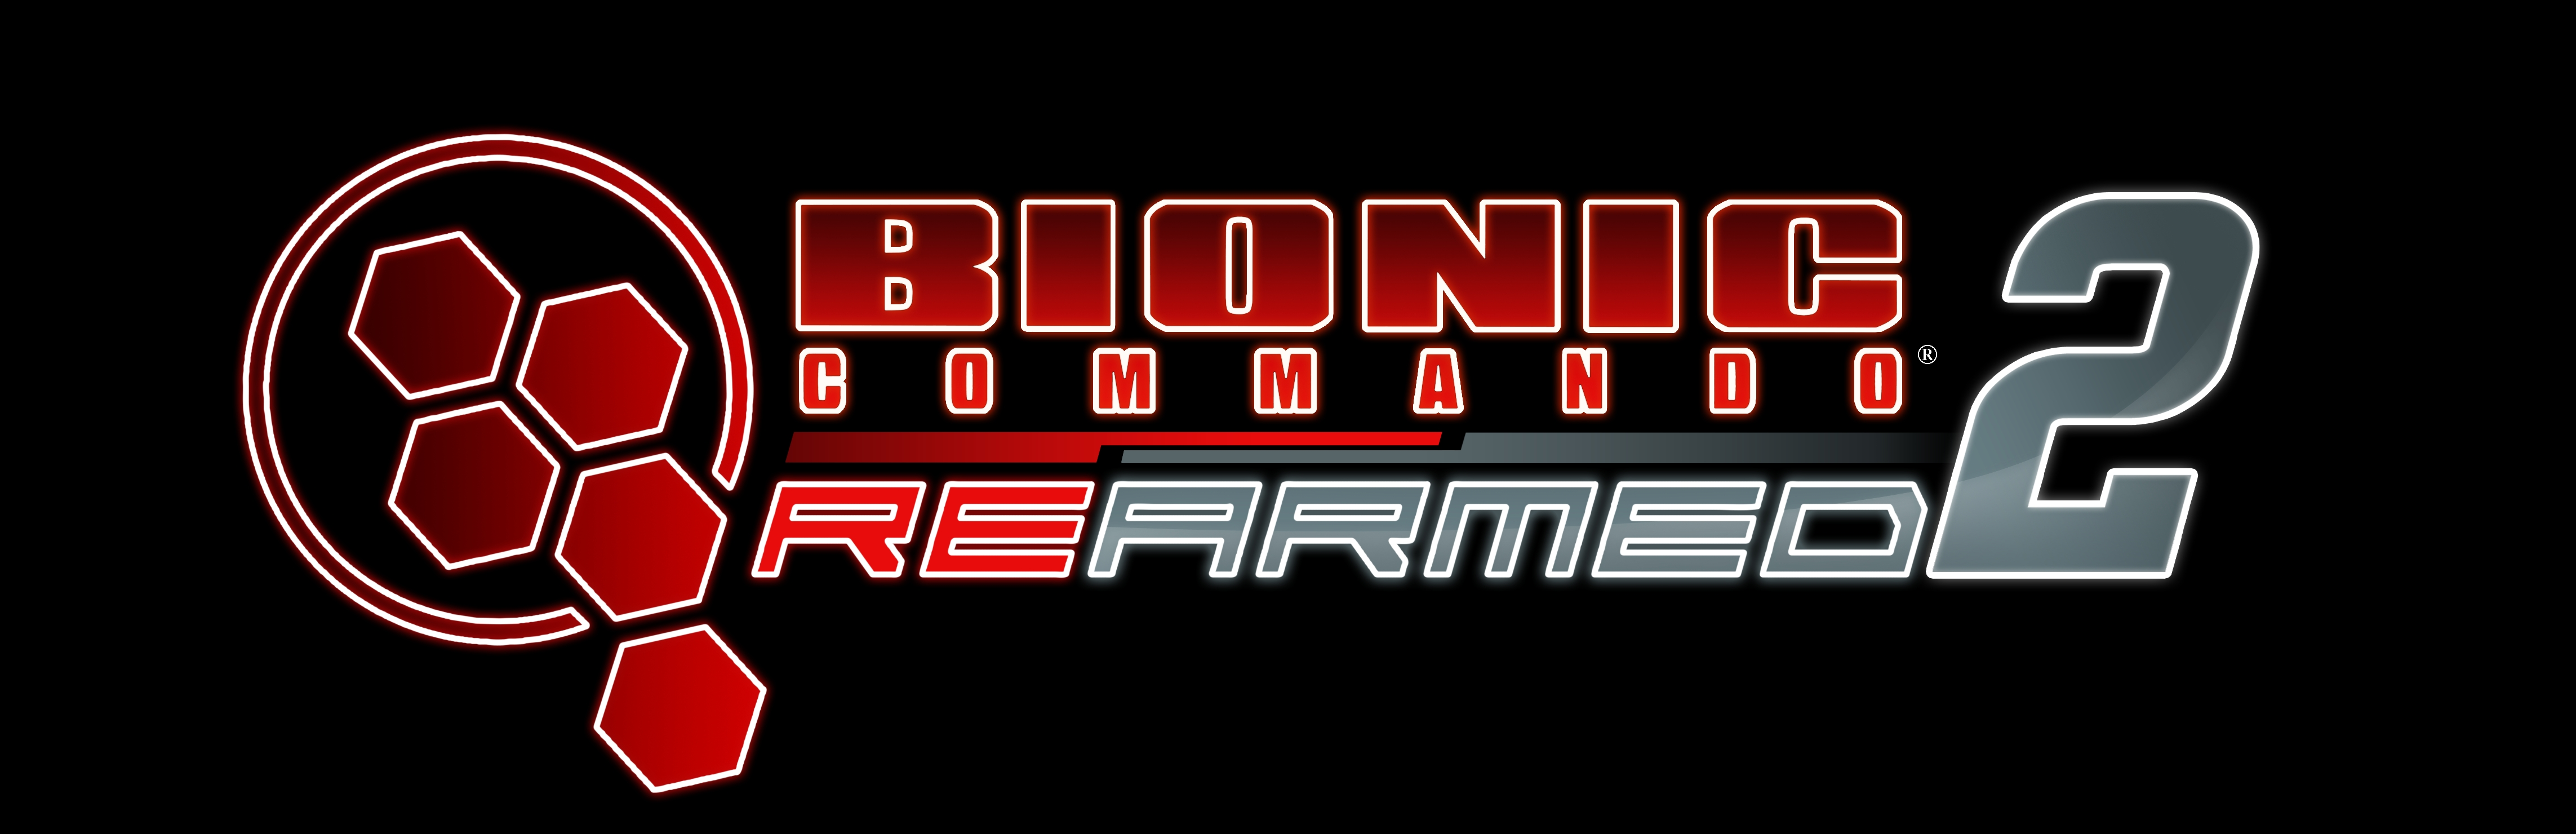 Bionic Commando Rearmed 2 out this week!